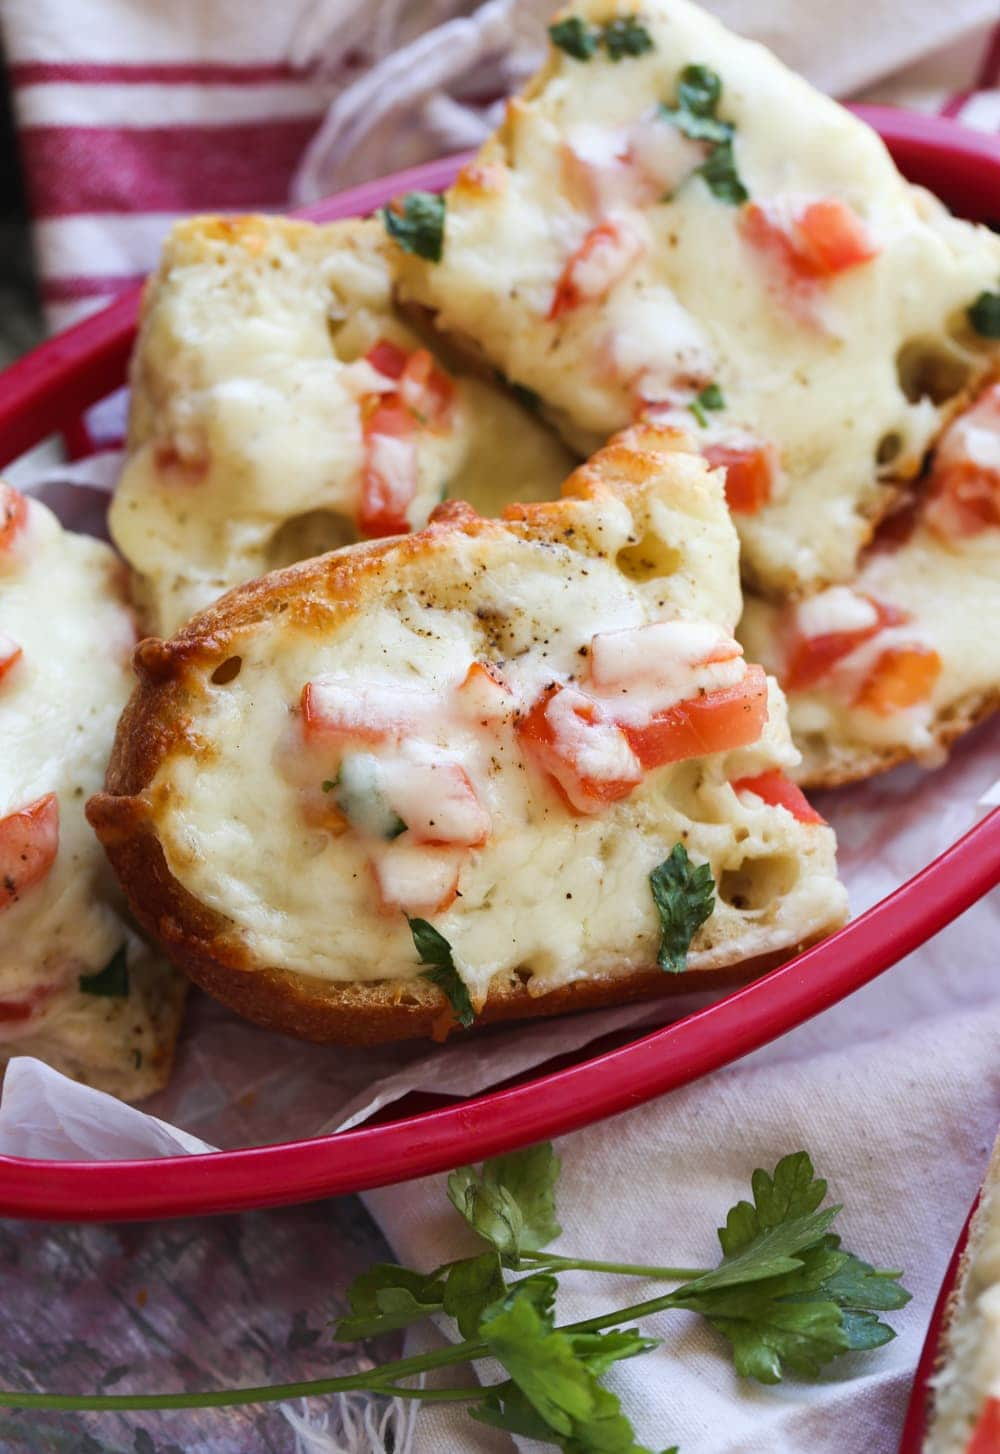 Beach Bread | Cheesy Bread With A Secret Ingredient